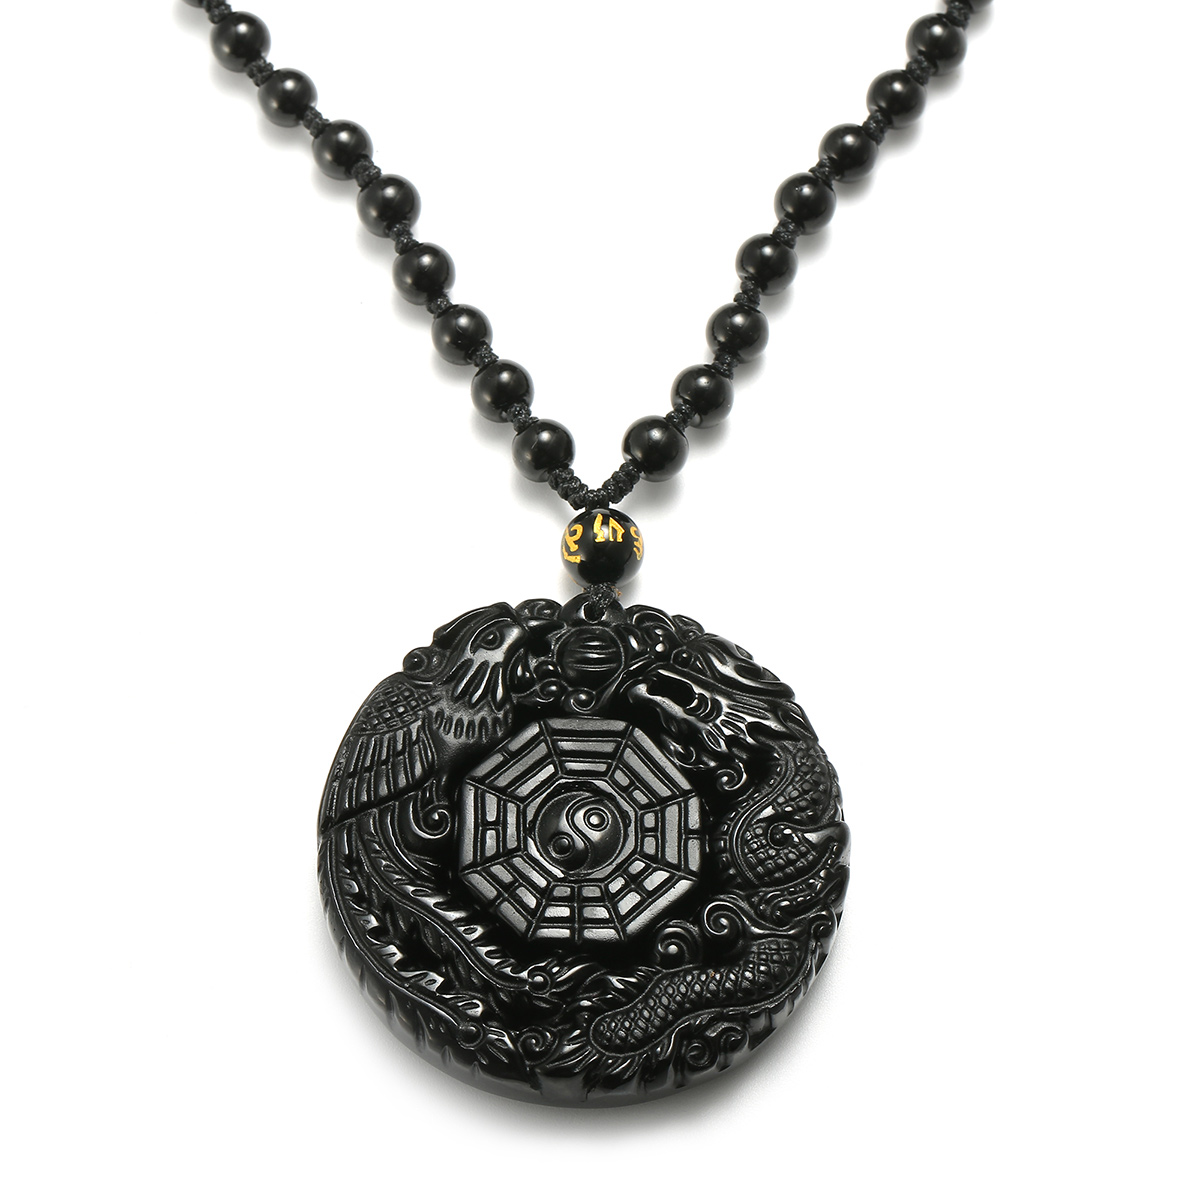 4cd938d8c6ca6 Black Obsidian Lucky Pendant Tai-Chi Necklace Chain For Men Women Gift